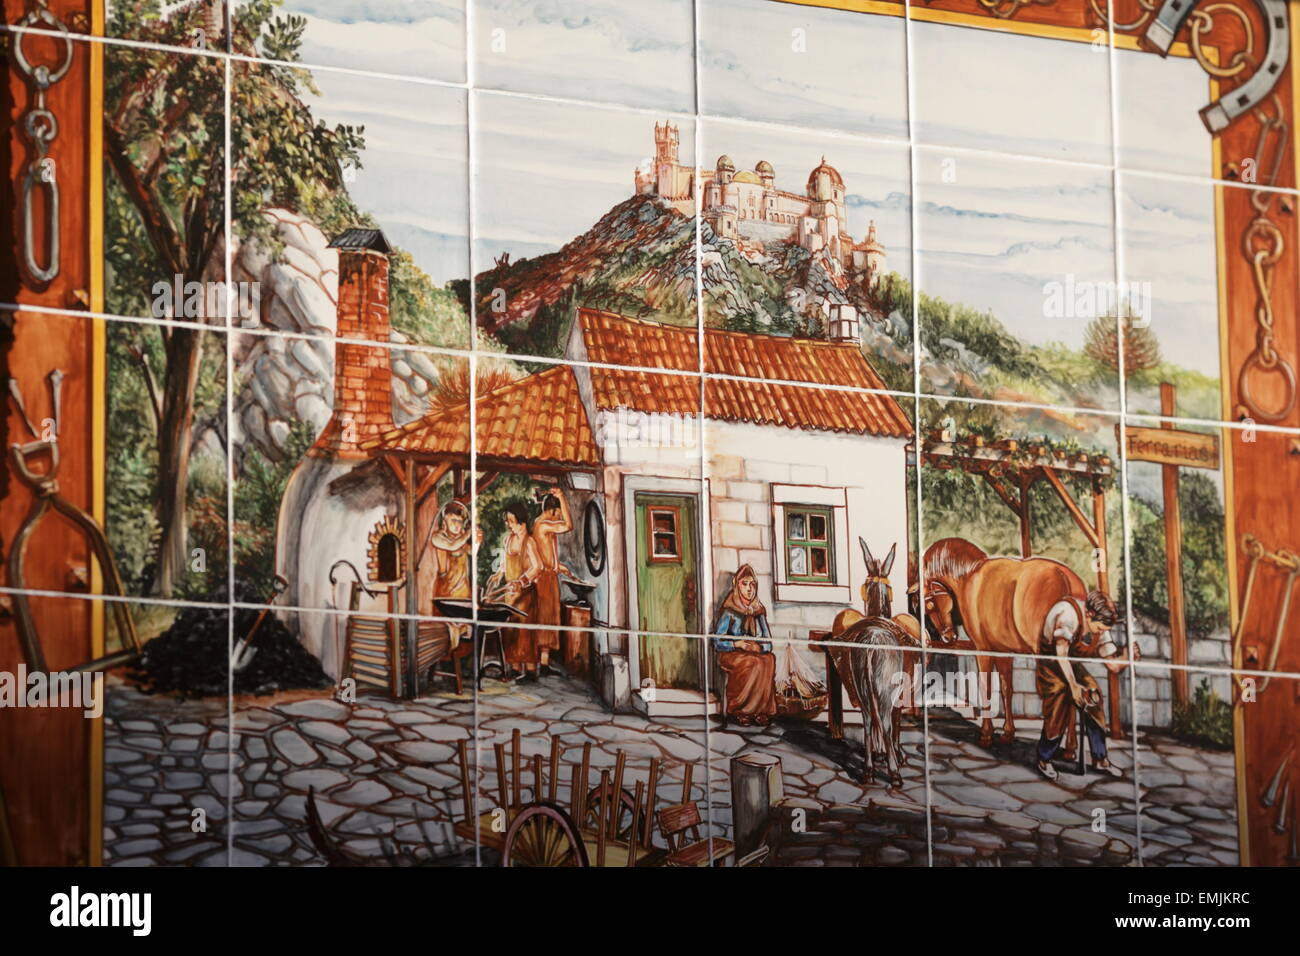 Painted tiles, Azulejos, blacksmith and Castle, Sintra, Portugal - Stock Image